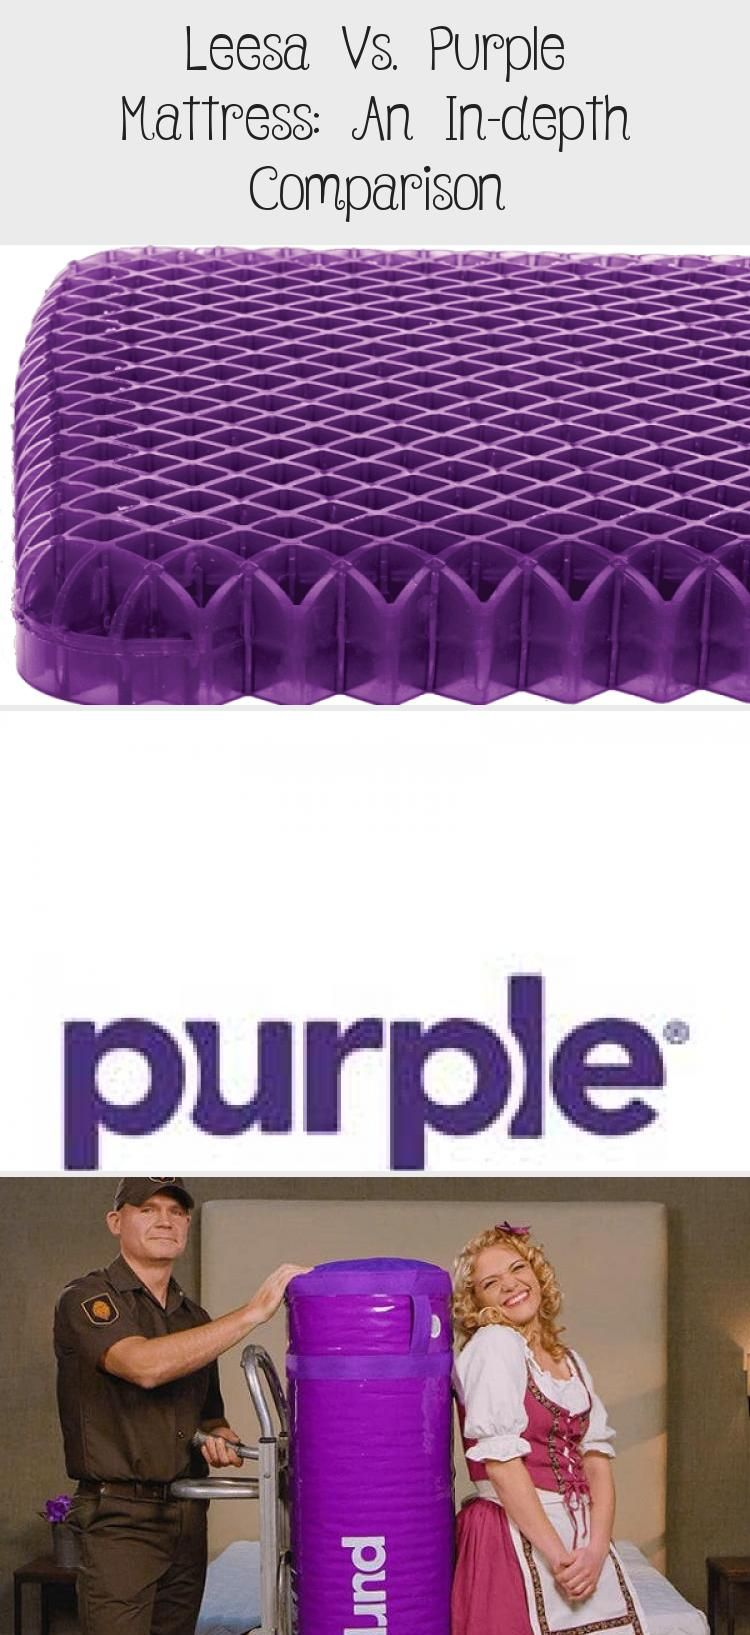 In This Head To Head Mattress Comparison We Are Going To Pit The Extremely Popular Leesa Mattress Against A Young Purple Mattress Mattress Comparison Mattress